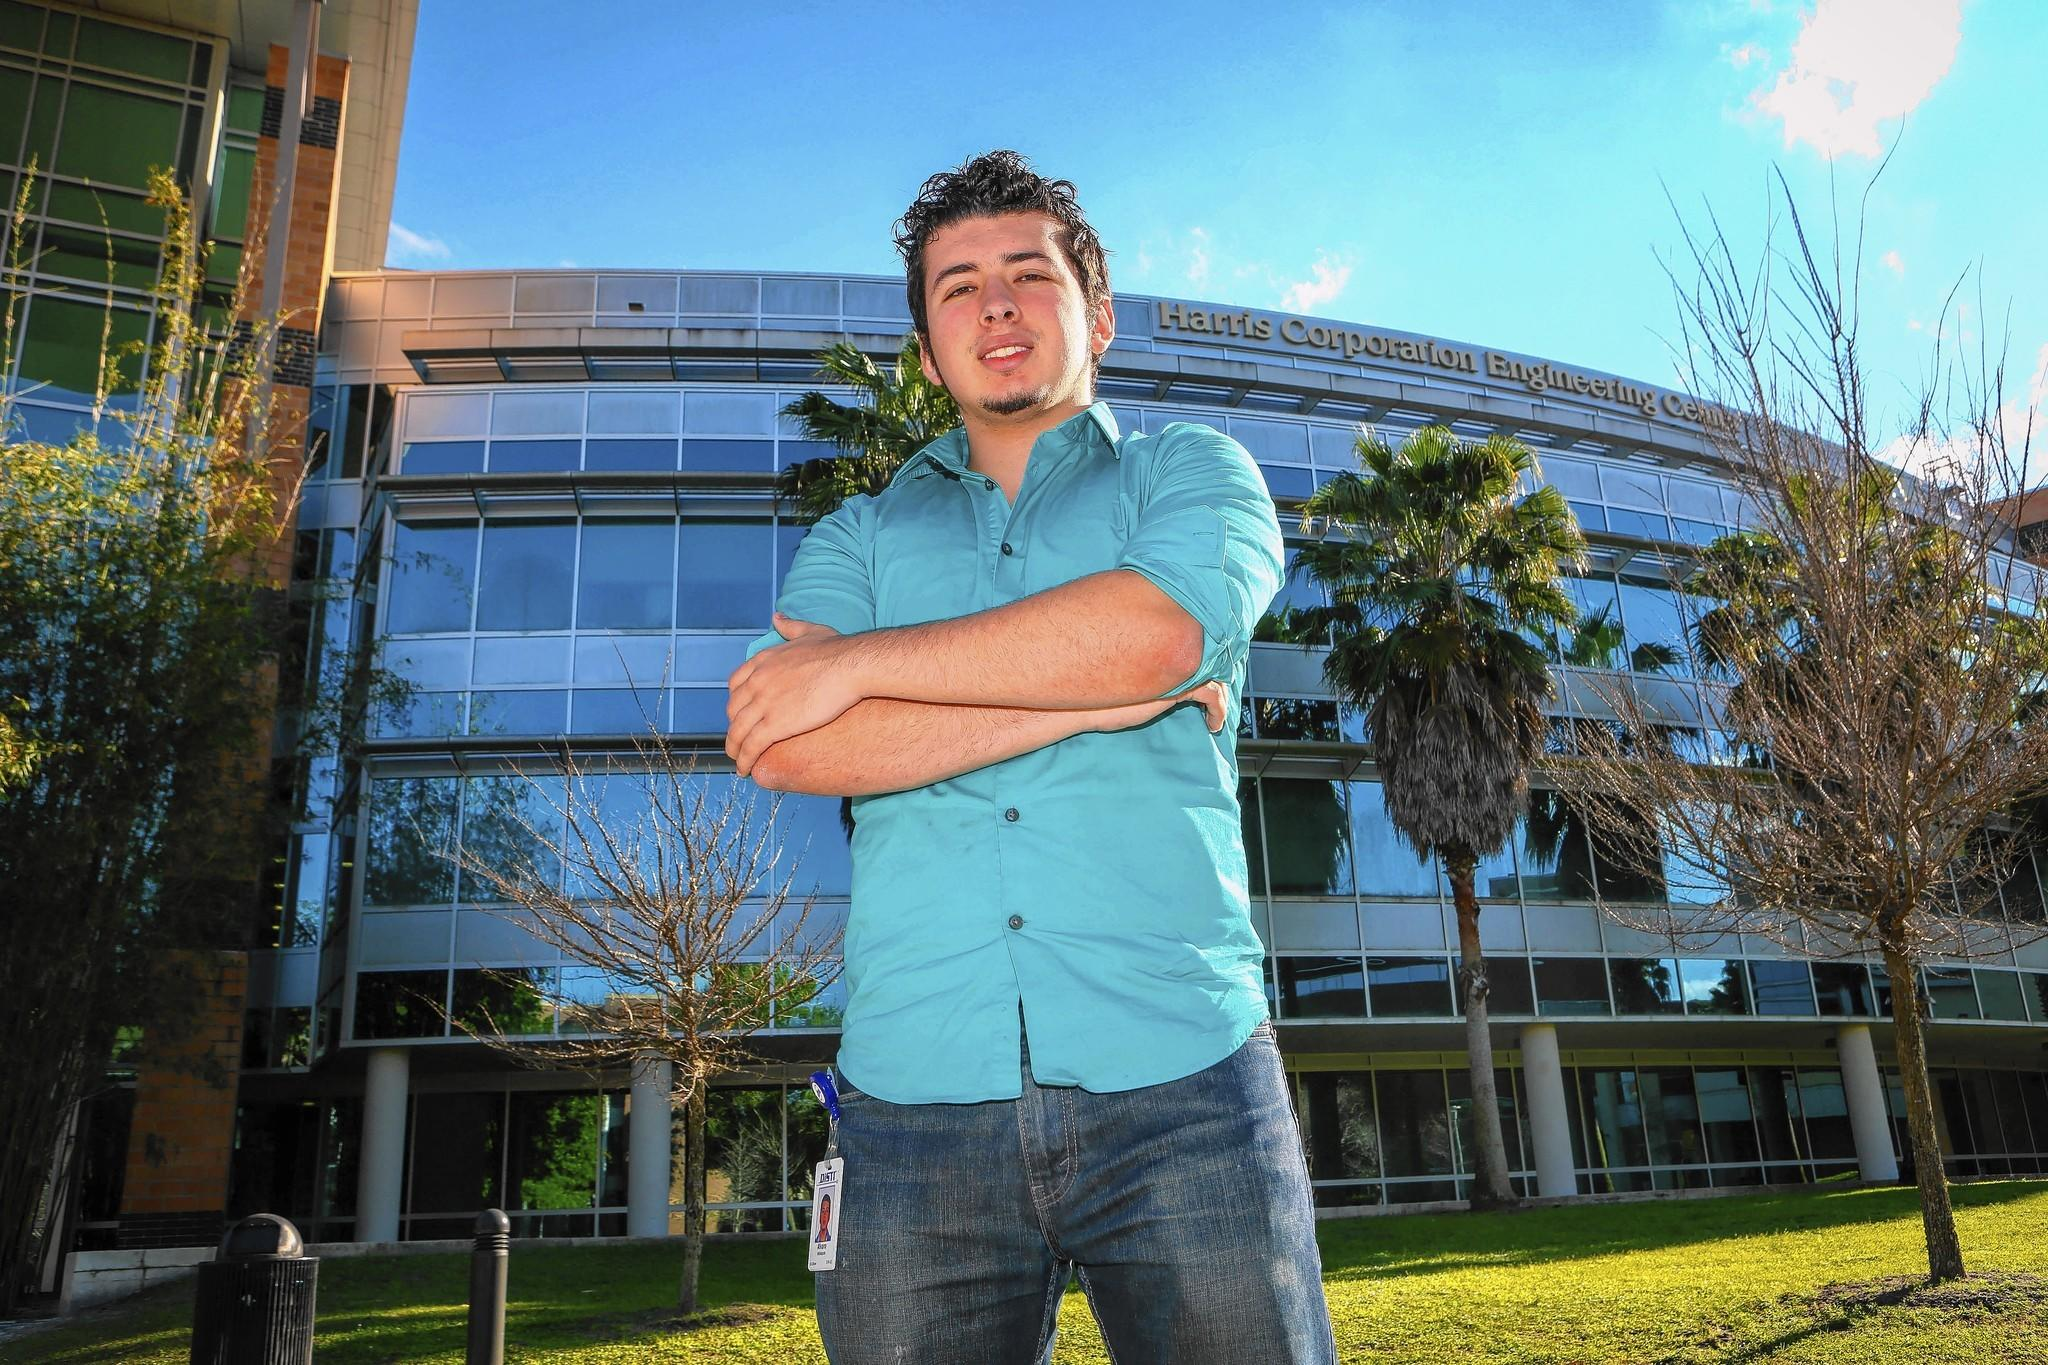 Alvaro Velasquez, poses for a photo outside the Harris Engineering Center Building on the University of Central Florida campus in Orlando, FLA. on Friday, February 28, 2014.